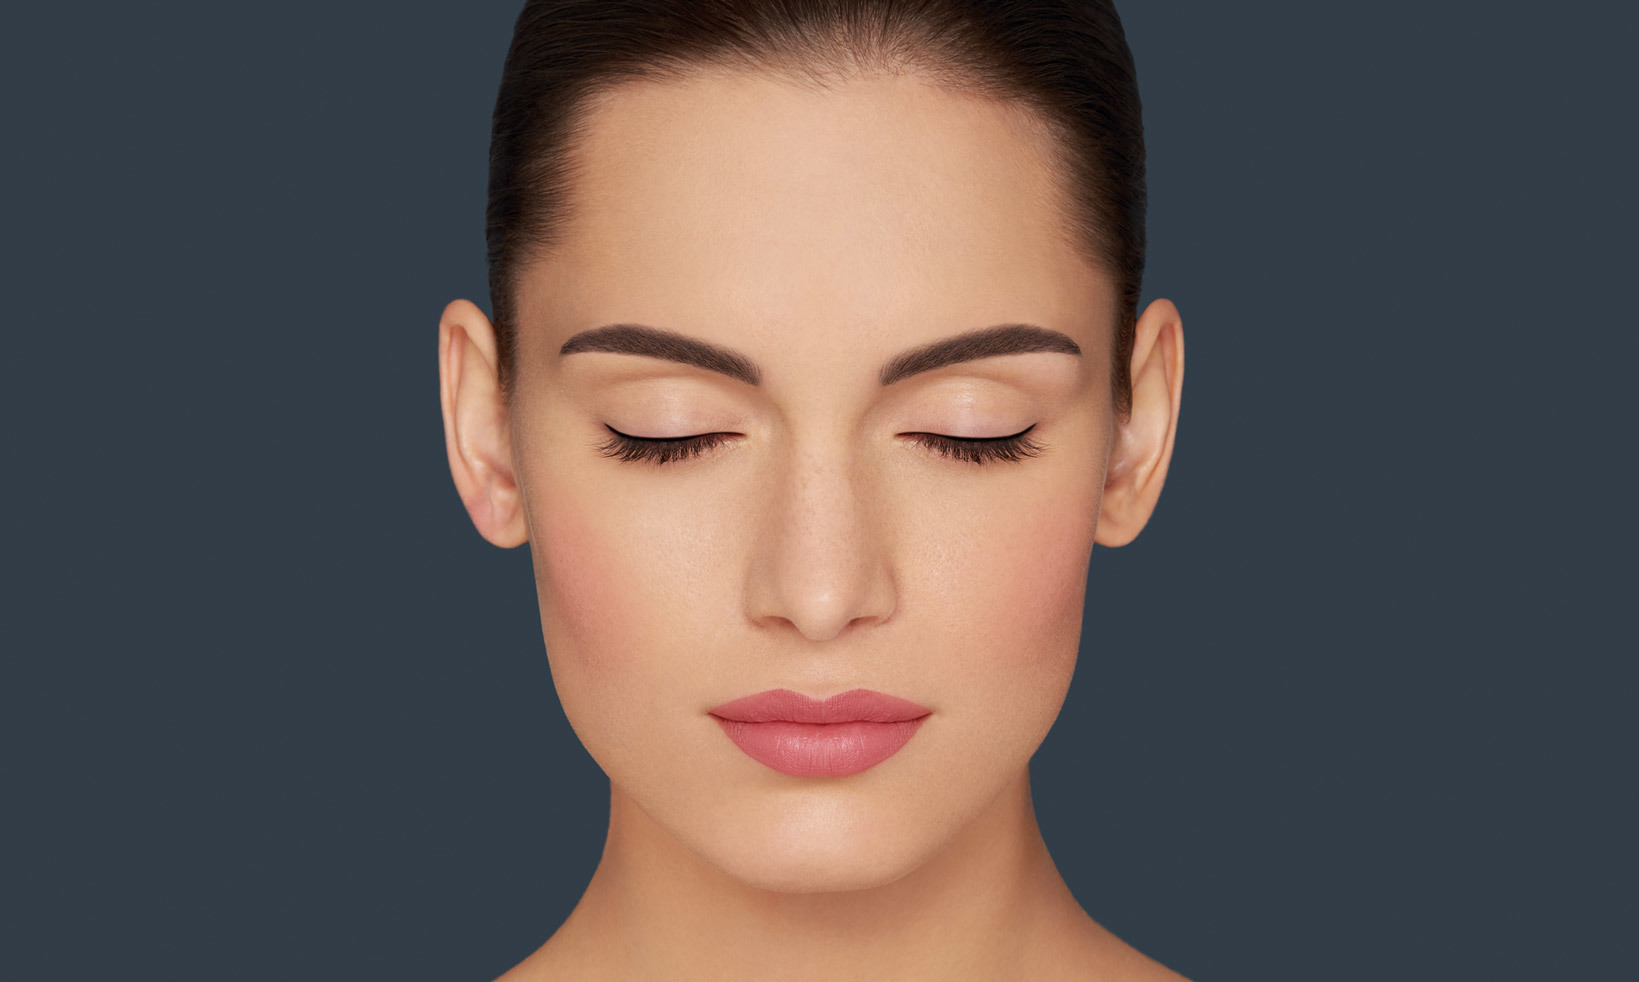 Woman after a Permanent Makeup treatment